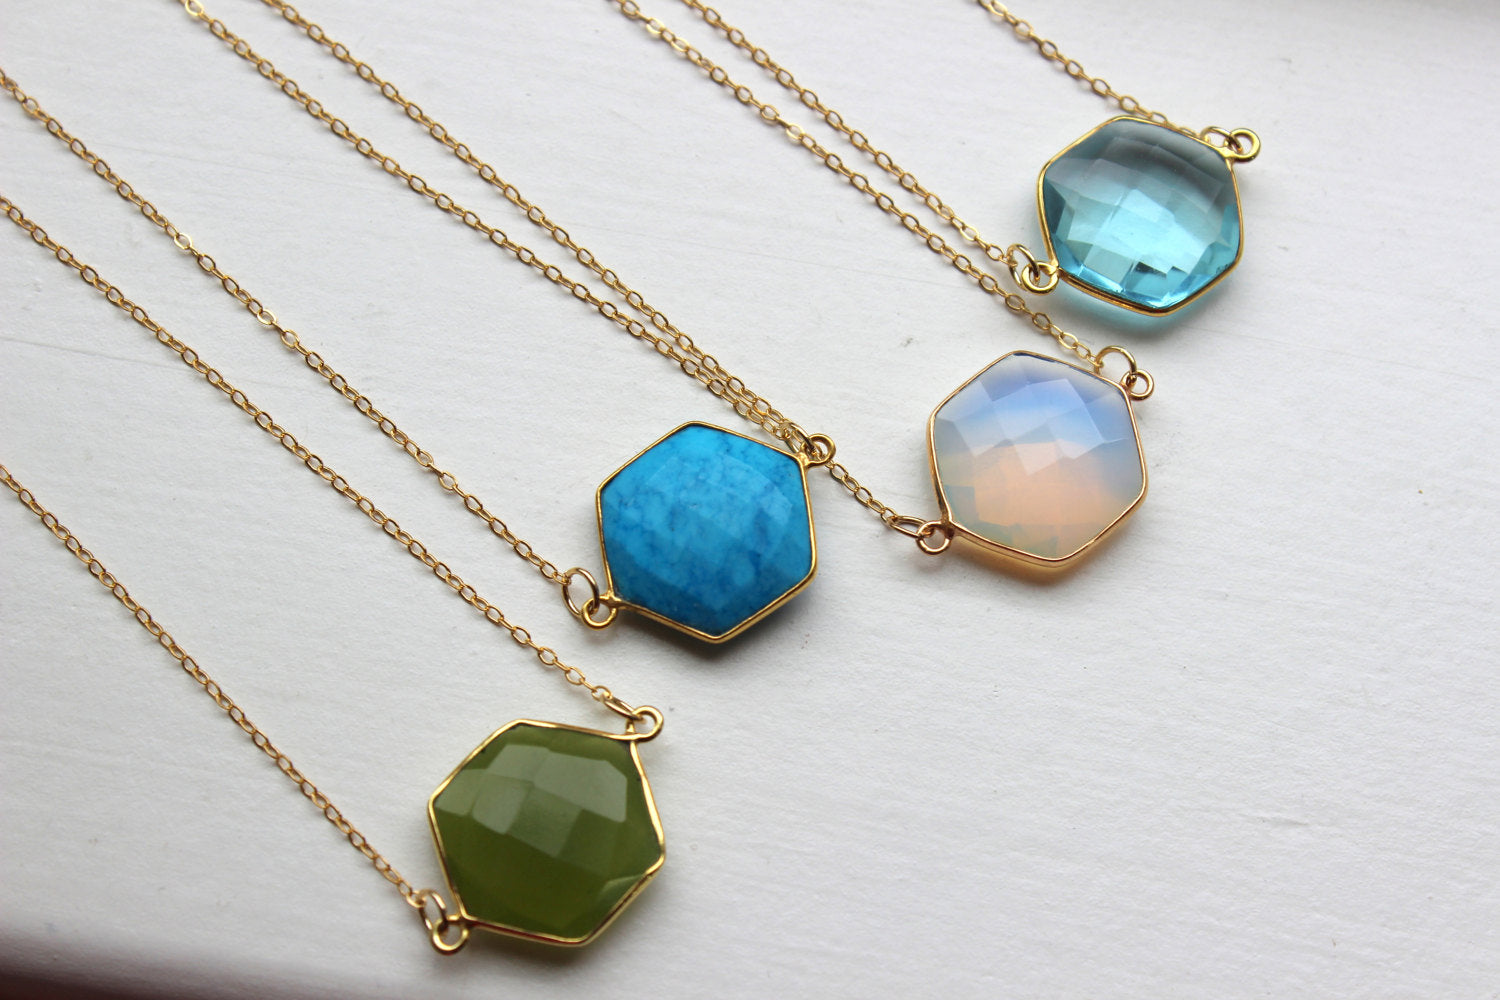 Gemstone Necklace, Gemstone Jewelry, Geometric Necklace, Geometric Jewelry, Hexagon Gold Statement Necklace Gold Dainty Jewelry Gift for Her